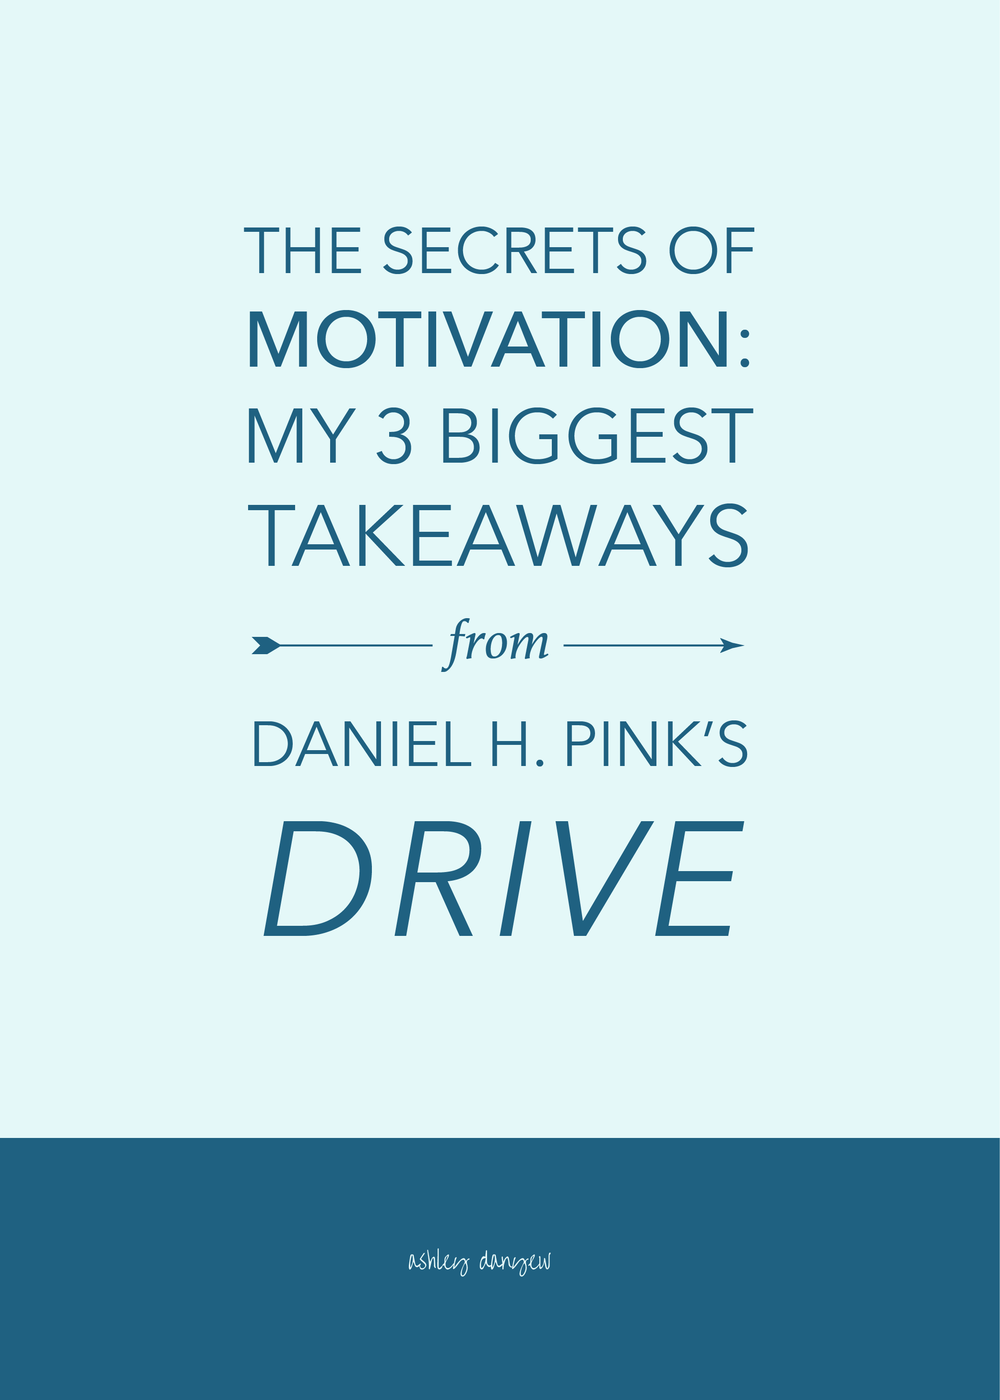 The Secrets of Motivation - My 3 Biggest Takeaways from Daniel H. Pink's Drive-16.png